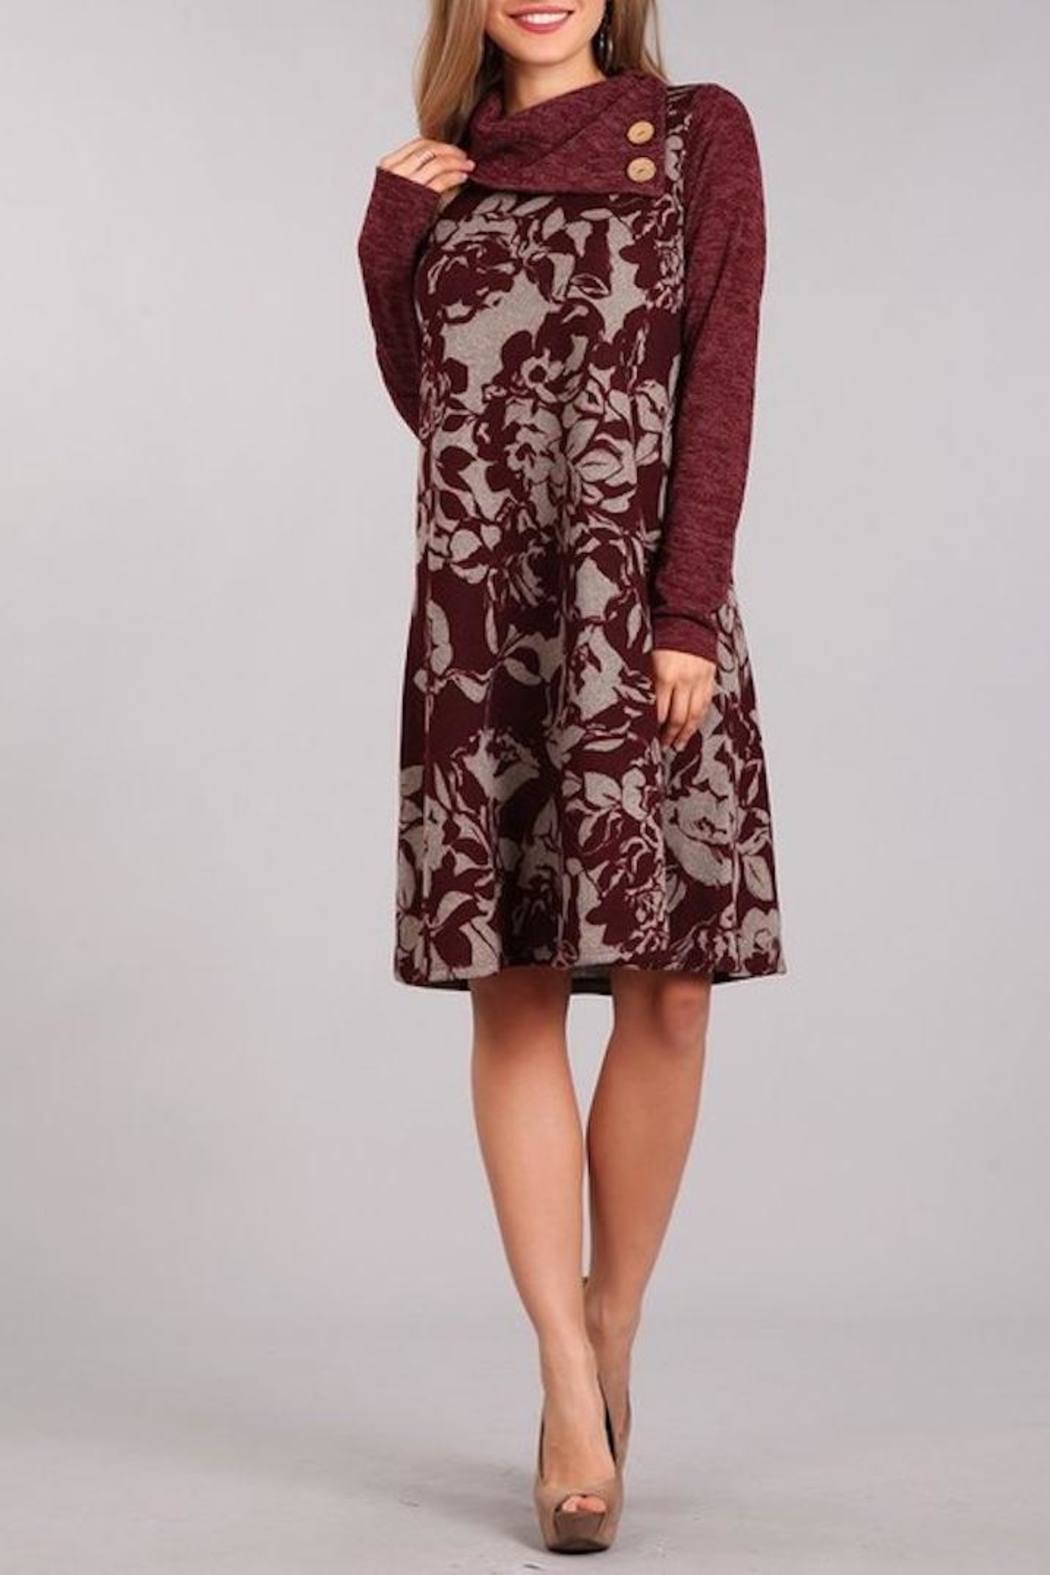 Chris & Carol Wine Floral Dress - Main Image